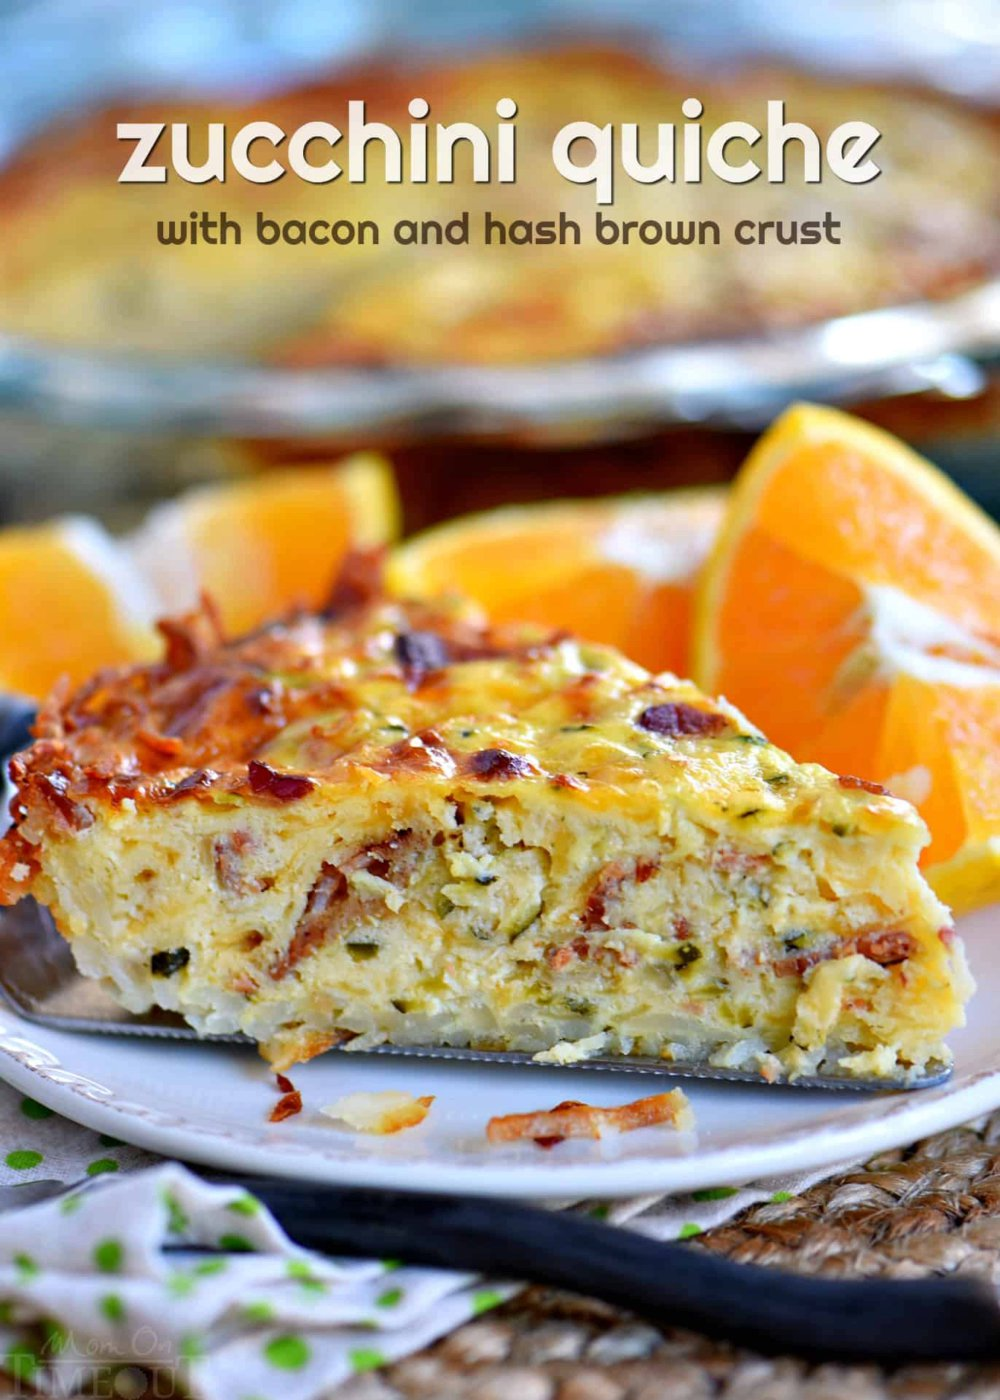 Zucchini Quiche with Bacon and Hash Brown Crust